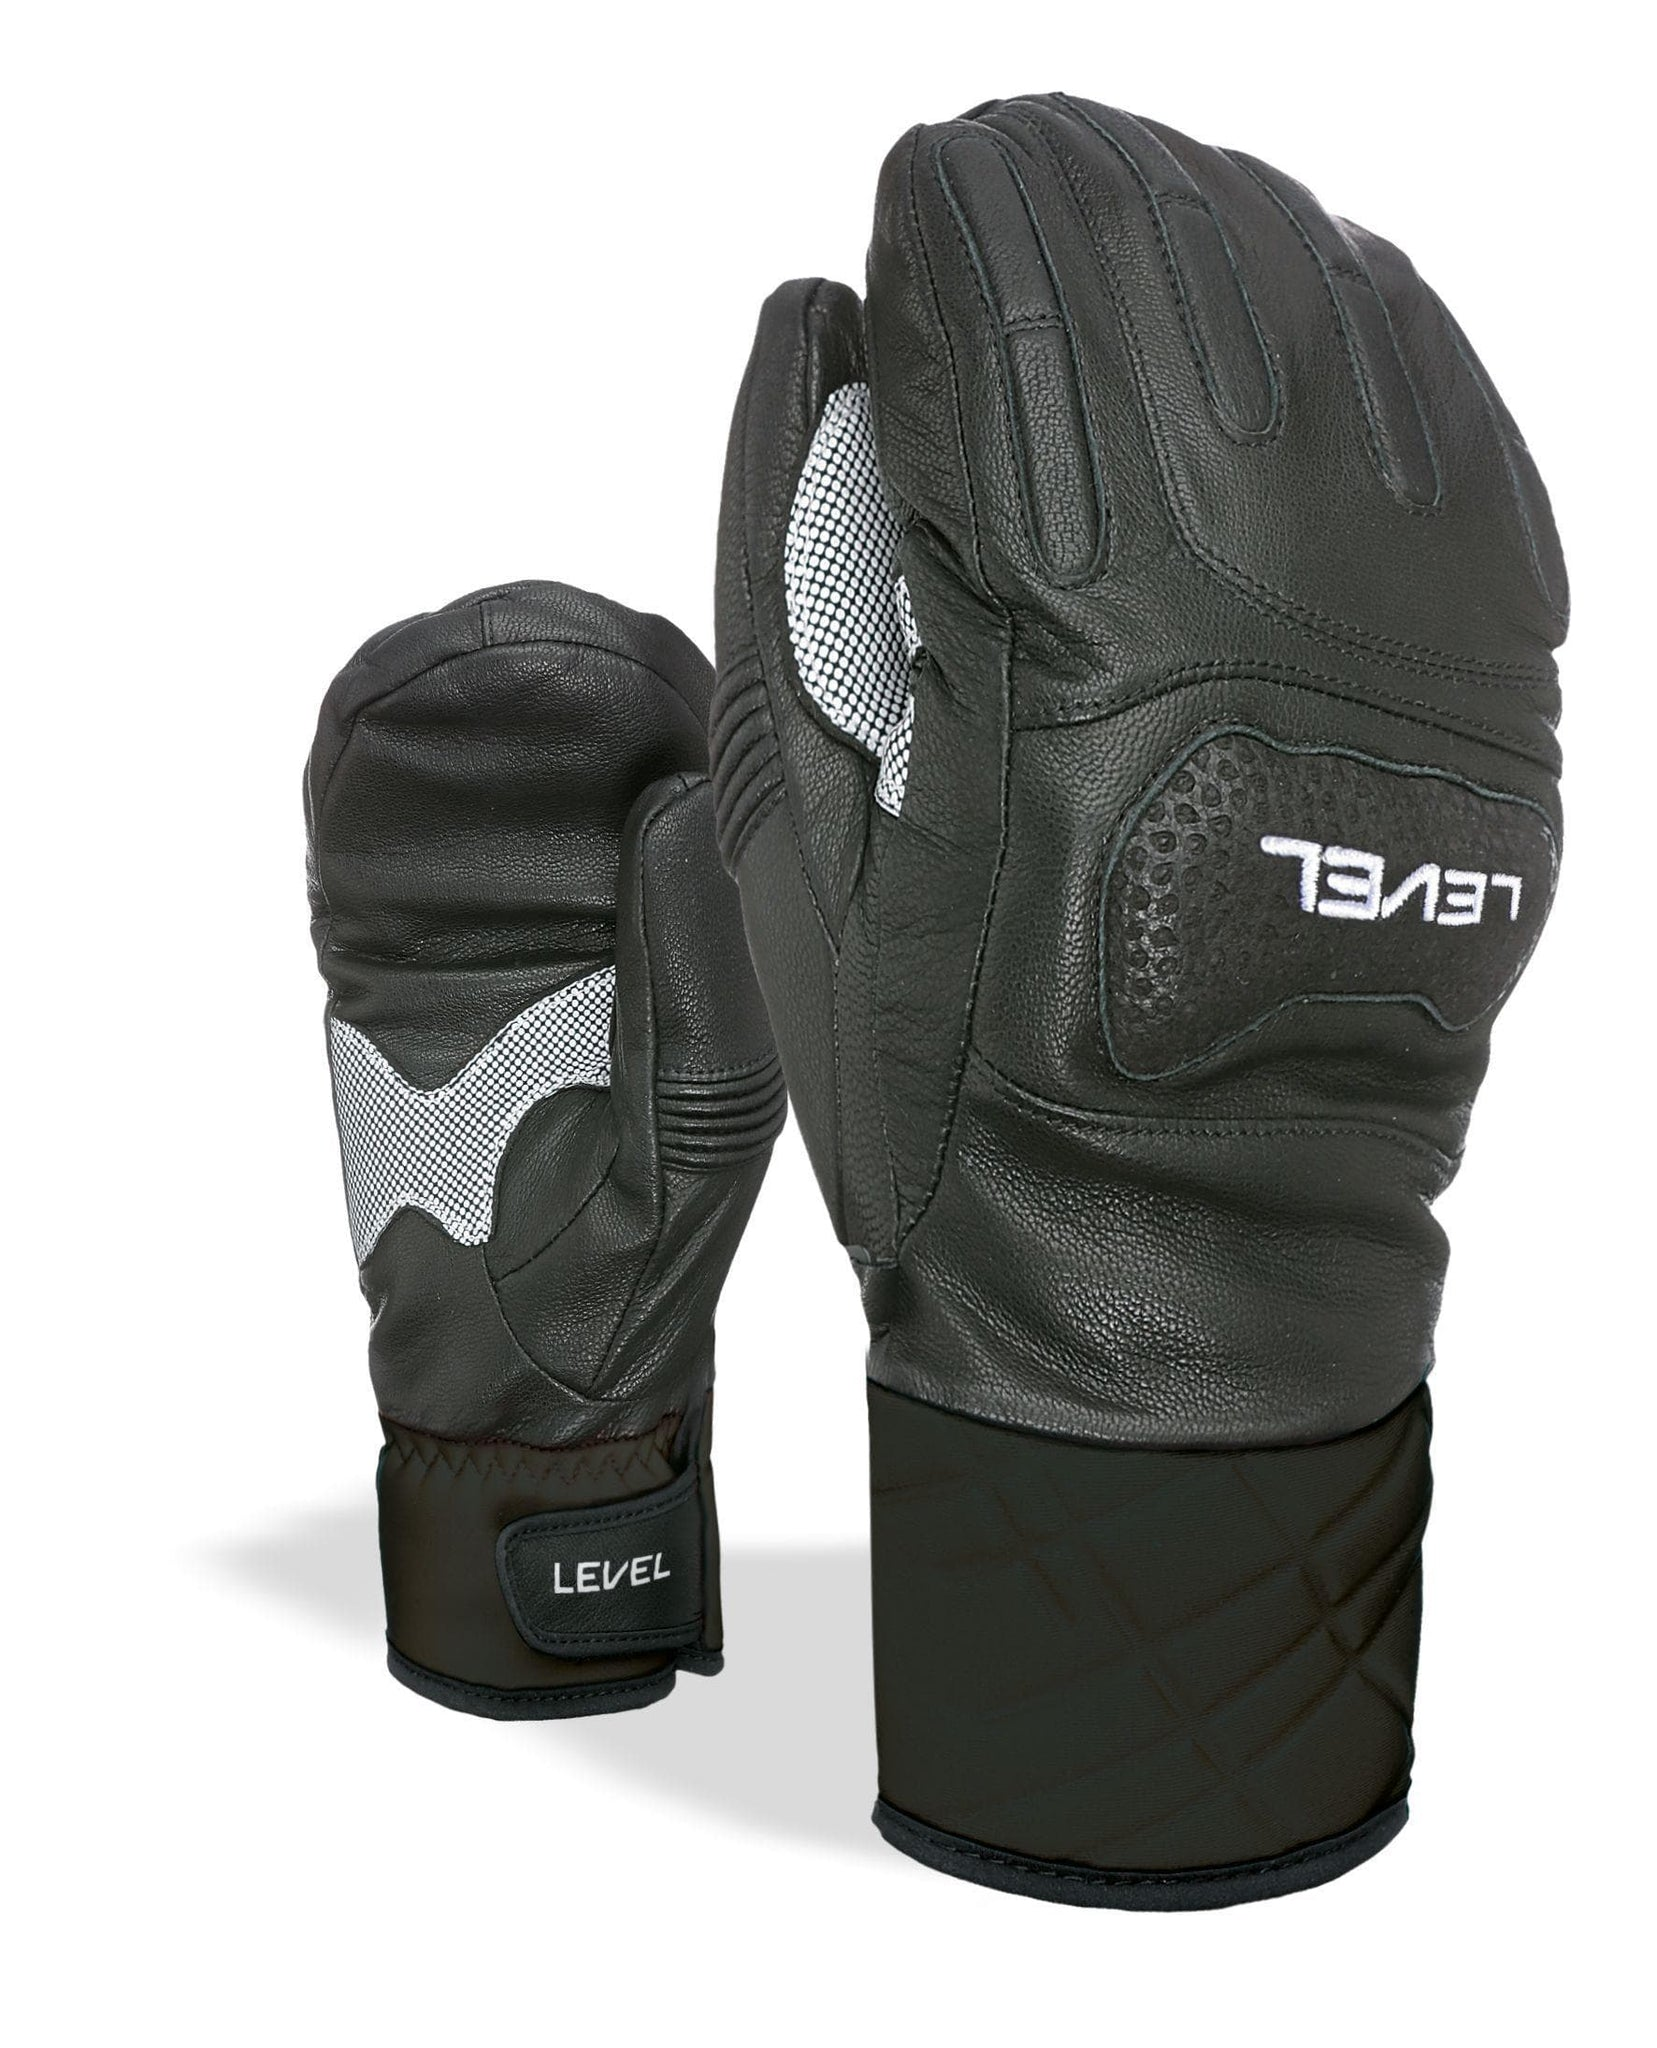 Level SQ CF Adult Mitt